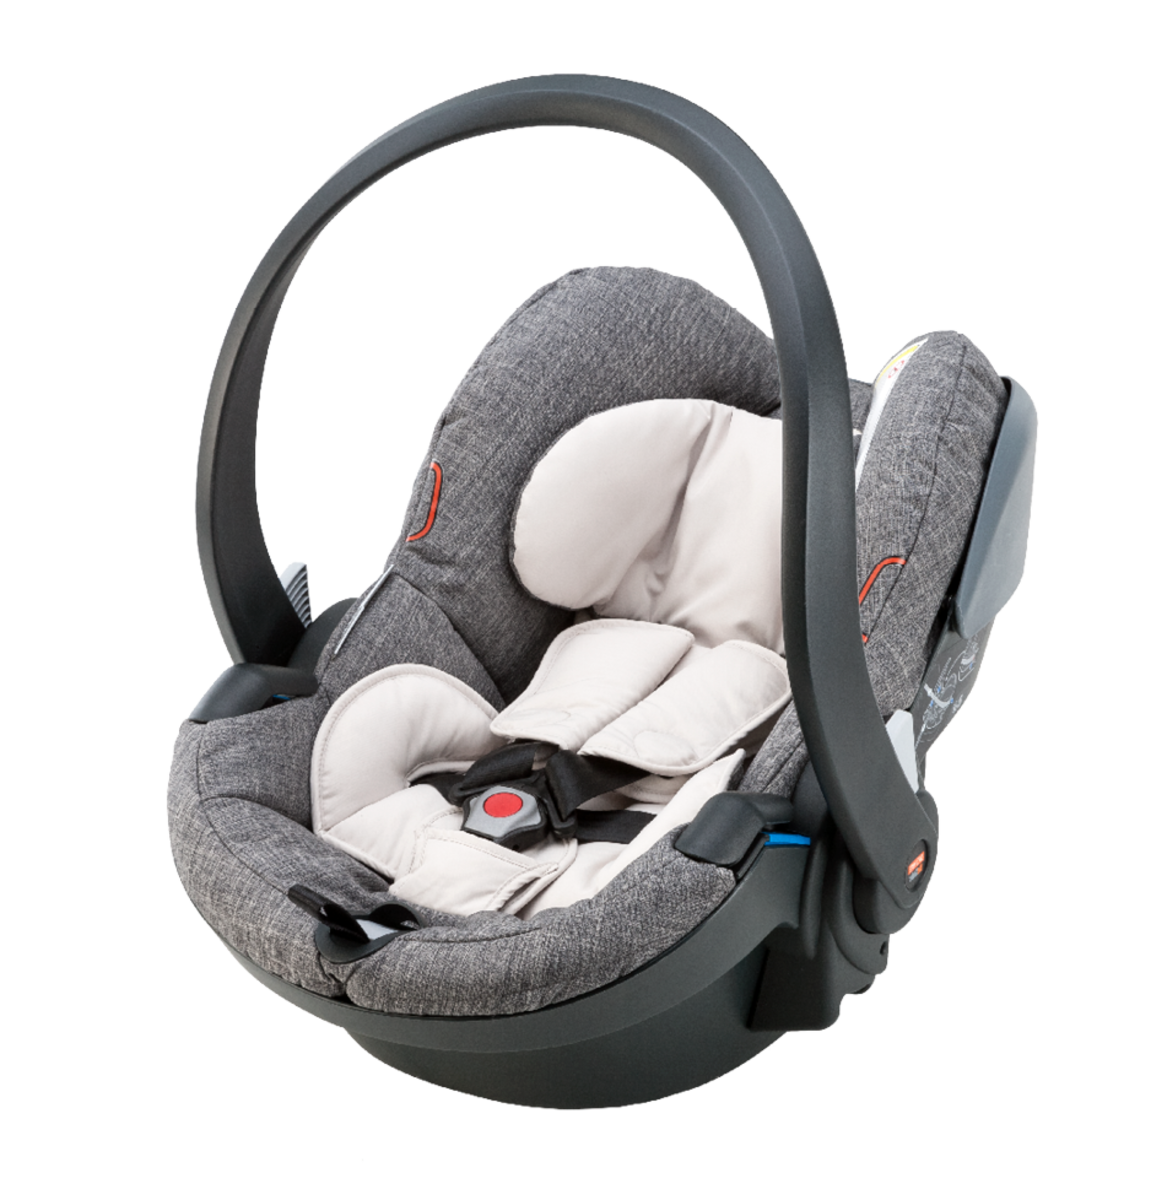 car seats for newborn infant and baby. Black Bedroom Furniture Sets. Home Design Ideas